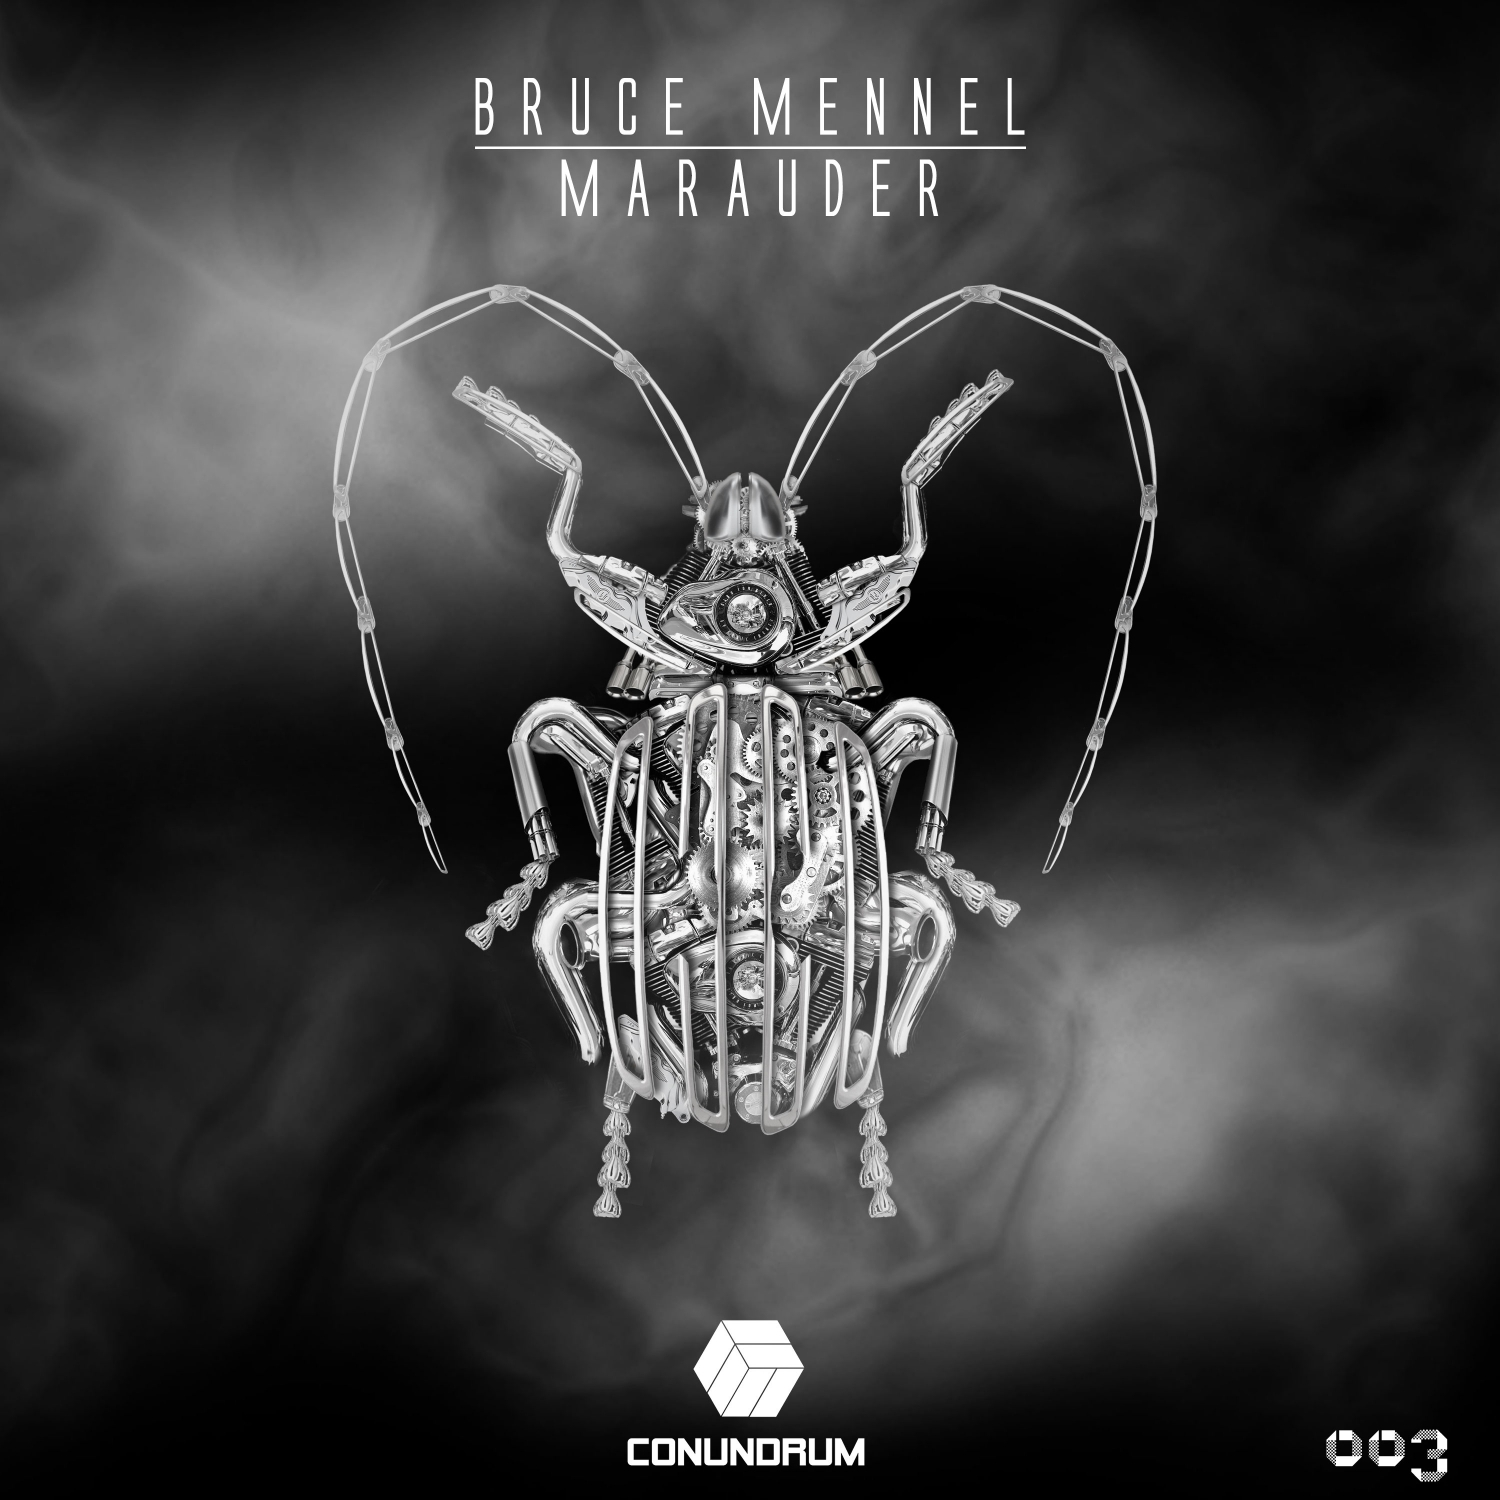 Bruce Mennel - Marauder (Original Mix)